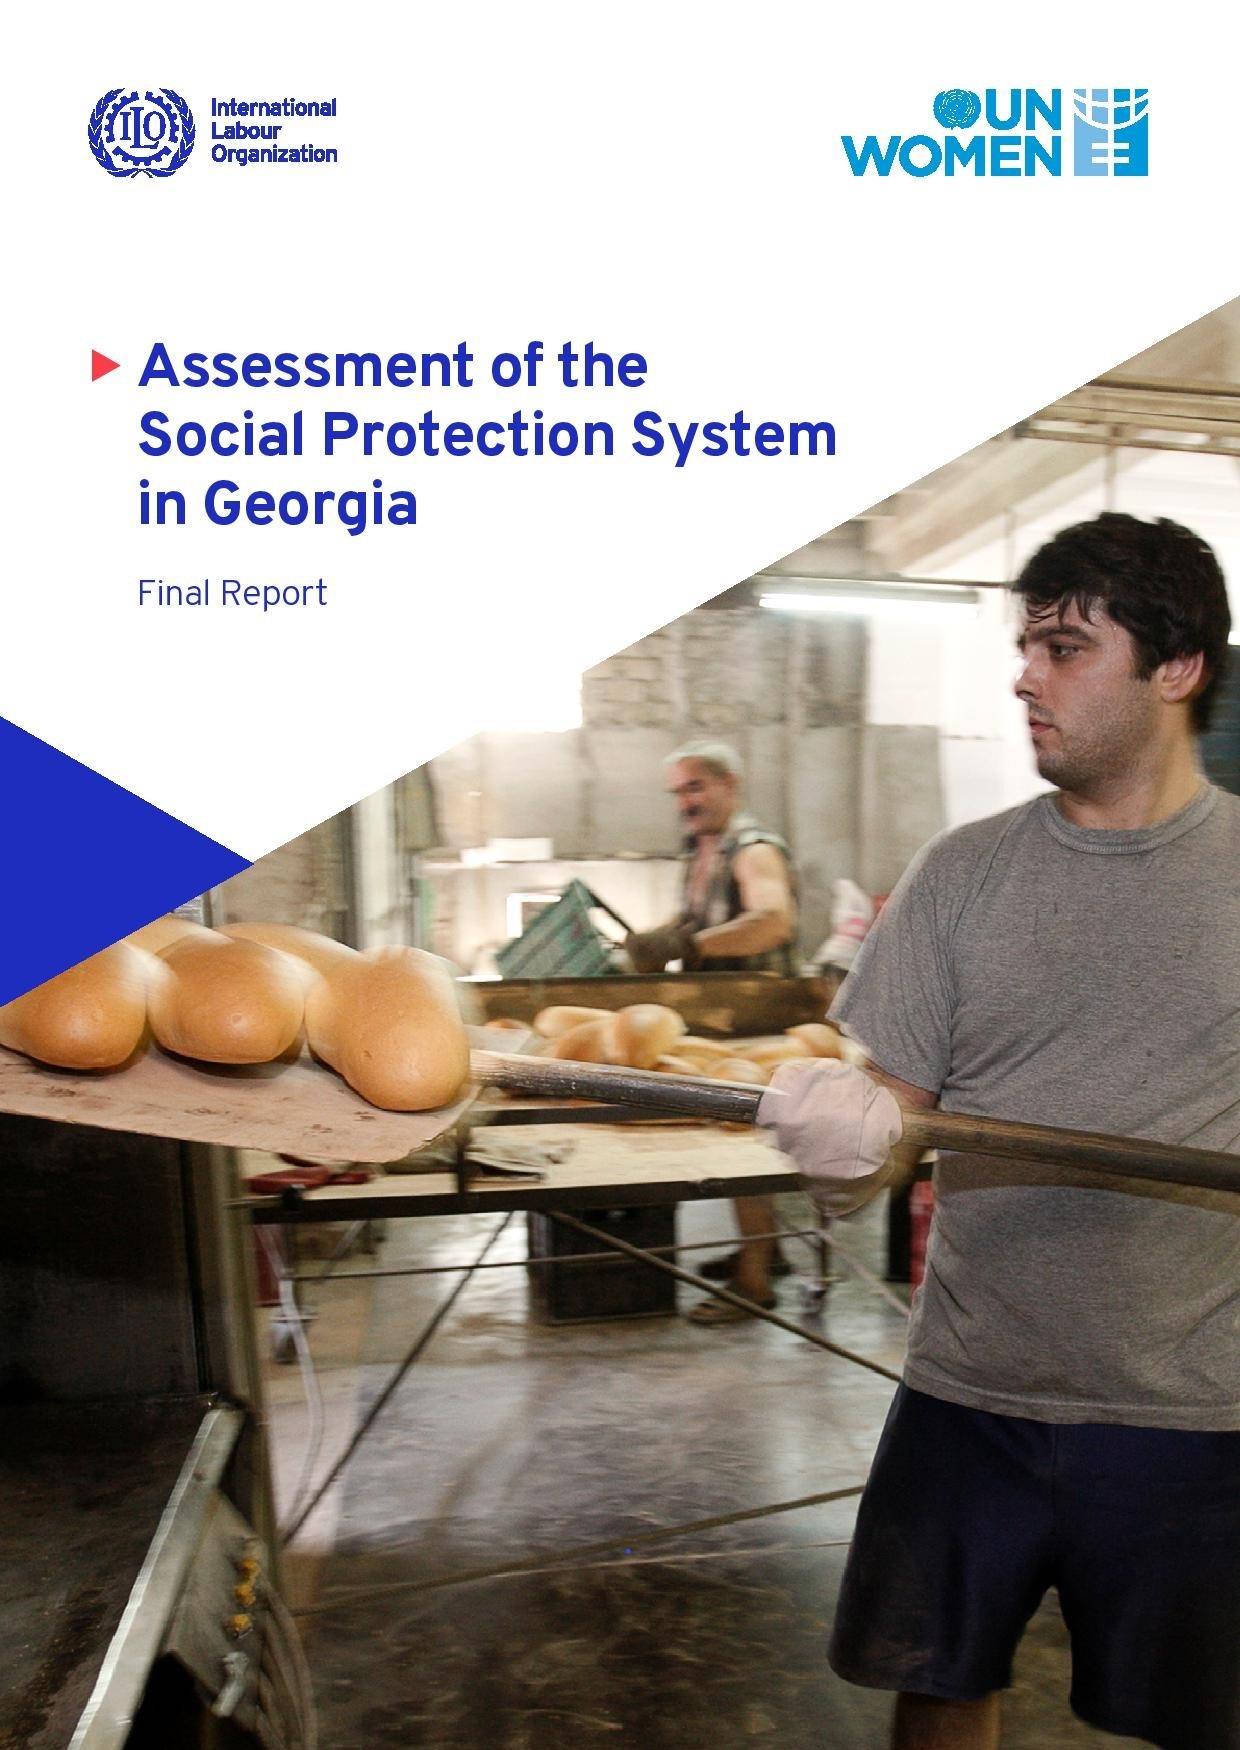 Assessment of the Social Protection System in Georgia